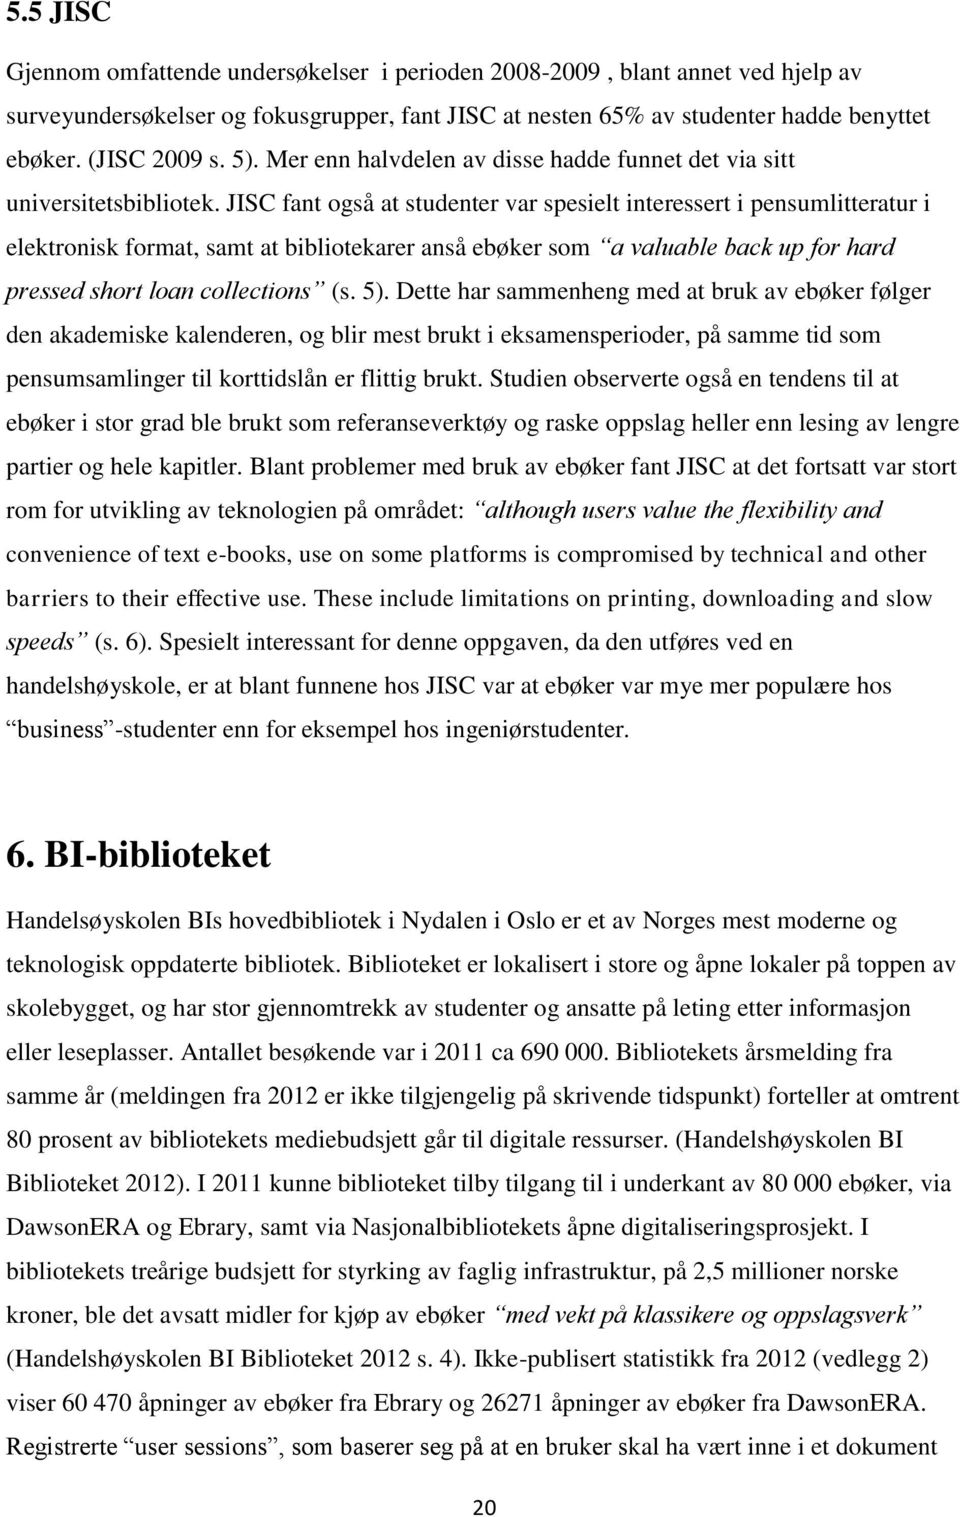 JISC fant også at studenter var spesielt interessert i pensumlitteratur i elektronisk format, samt at bibliotekarer anså ebøker som a valuable back up for hard pressed short loan collections (s. 5).